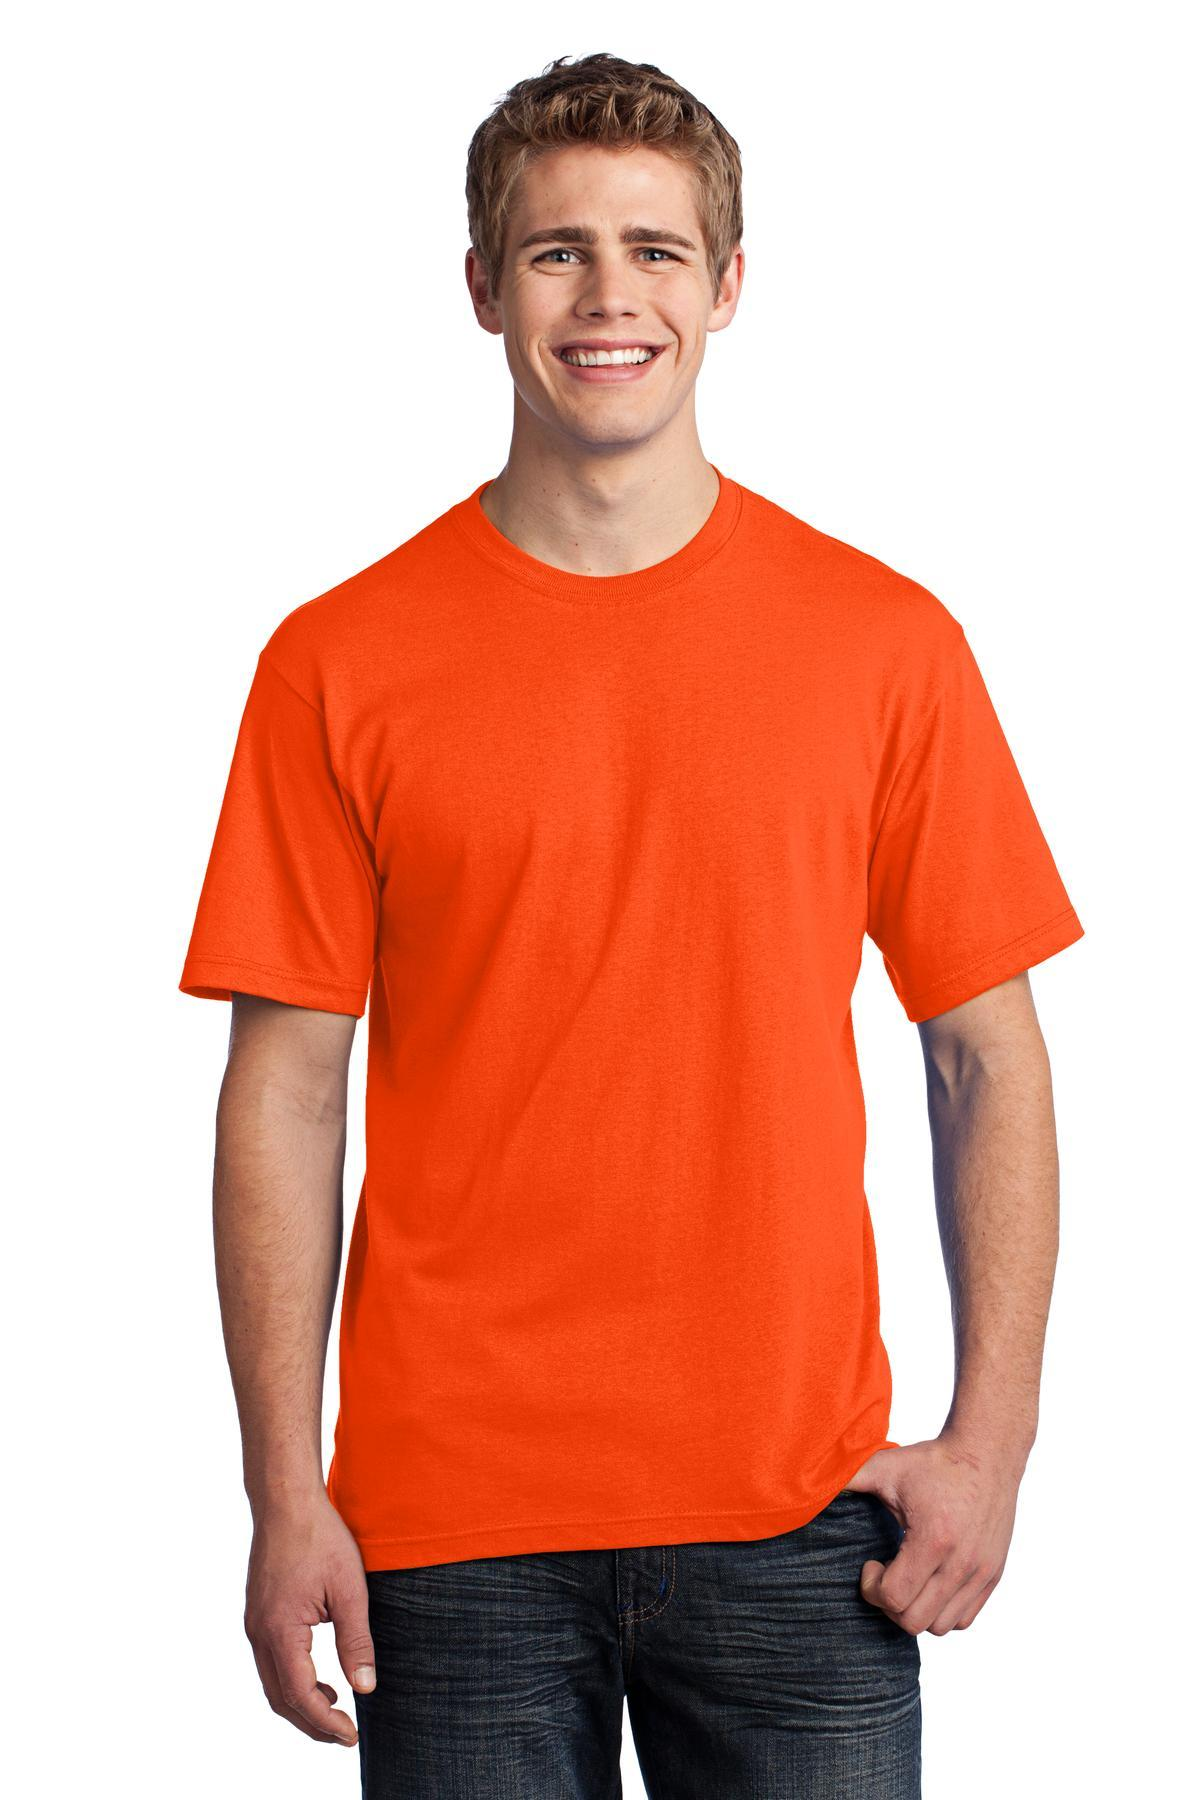 Safety Orange - Port & Company USA100